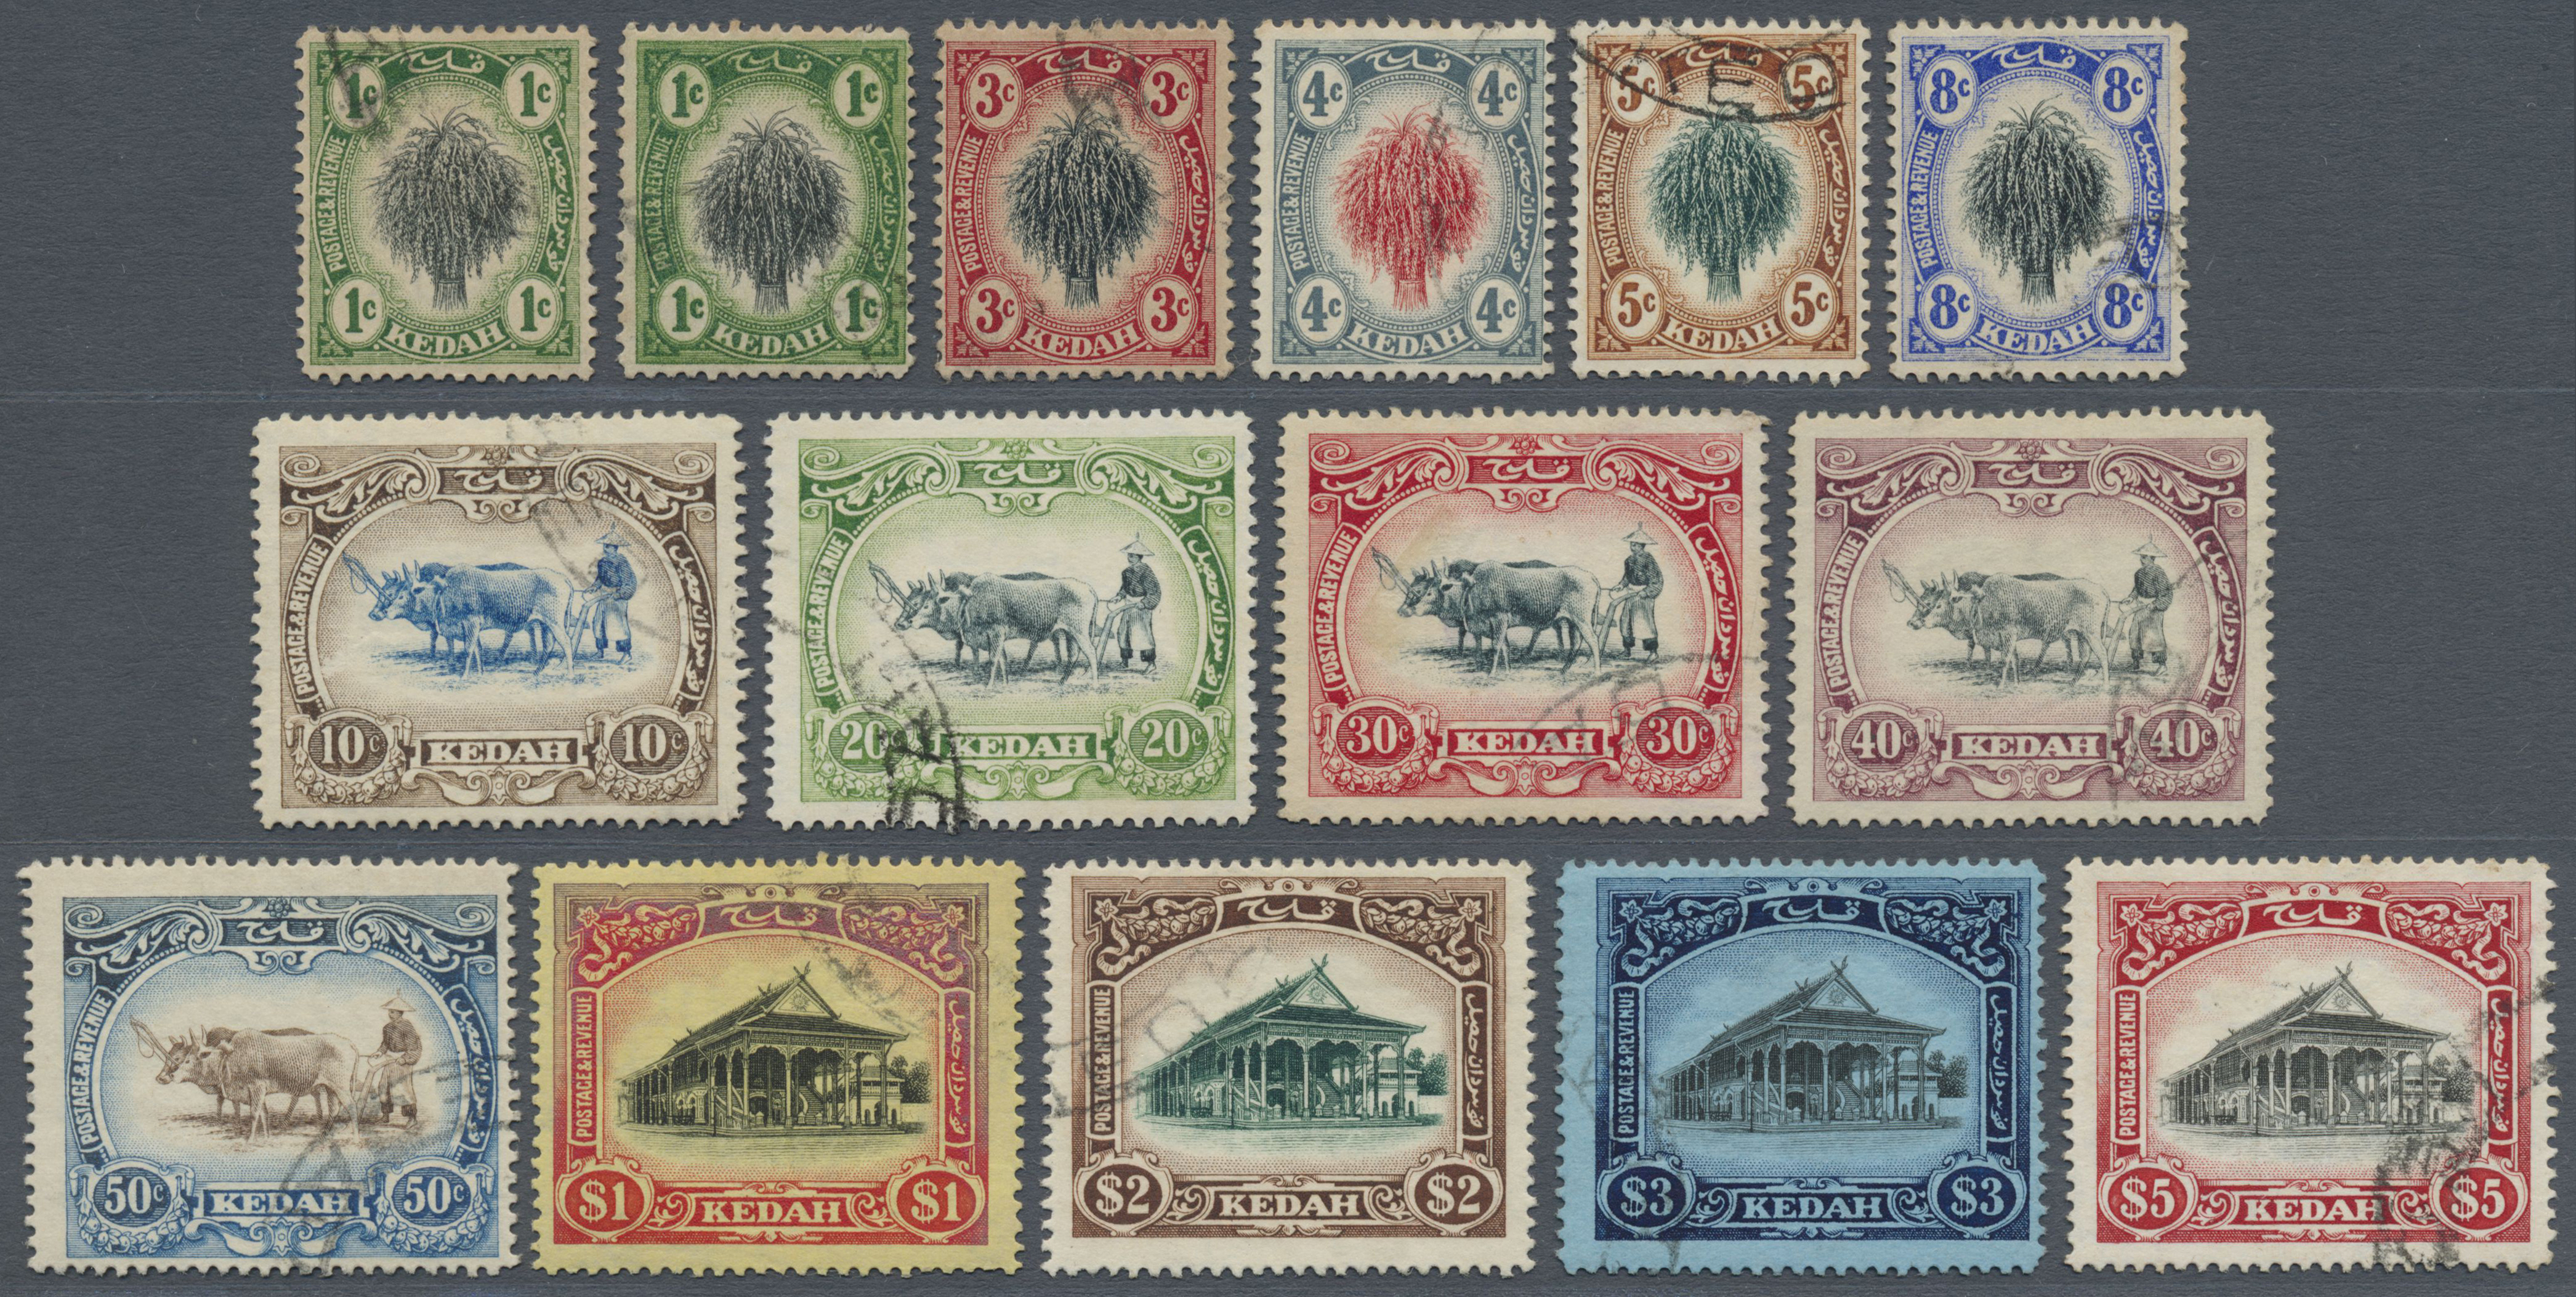 Lot 9078 - Malaiische Staaten - Kedah  -  Auktionshaus Christoph Gärtner GmbH & Co. KG Philately: ASIA single lots including Special Catalog Malaya Auction #39 Day 3